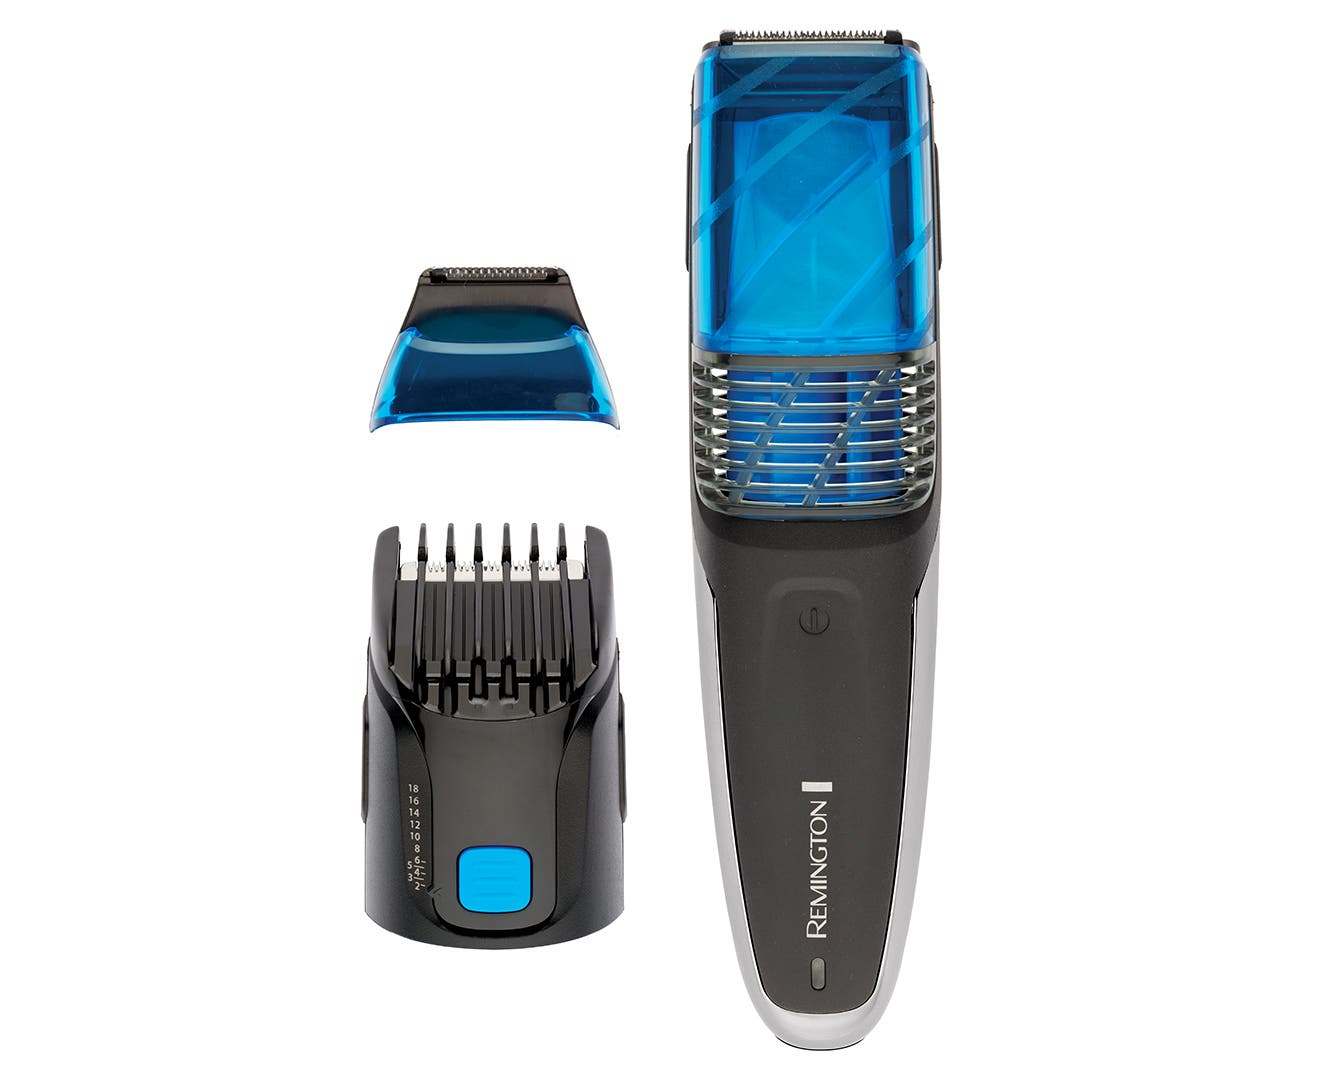 Remington Vac Trim Beard Trimmer - MB6850AU